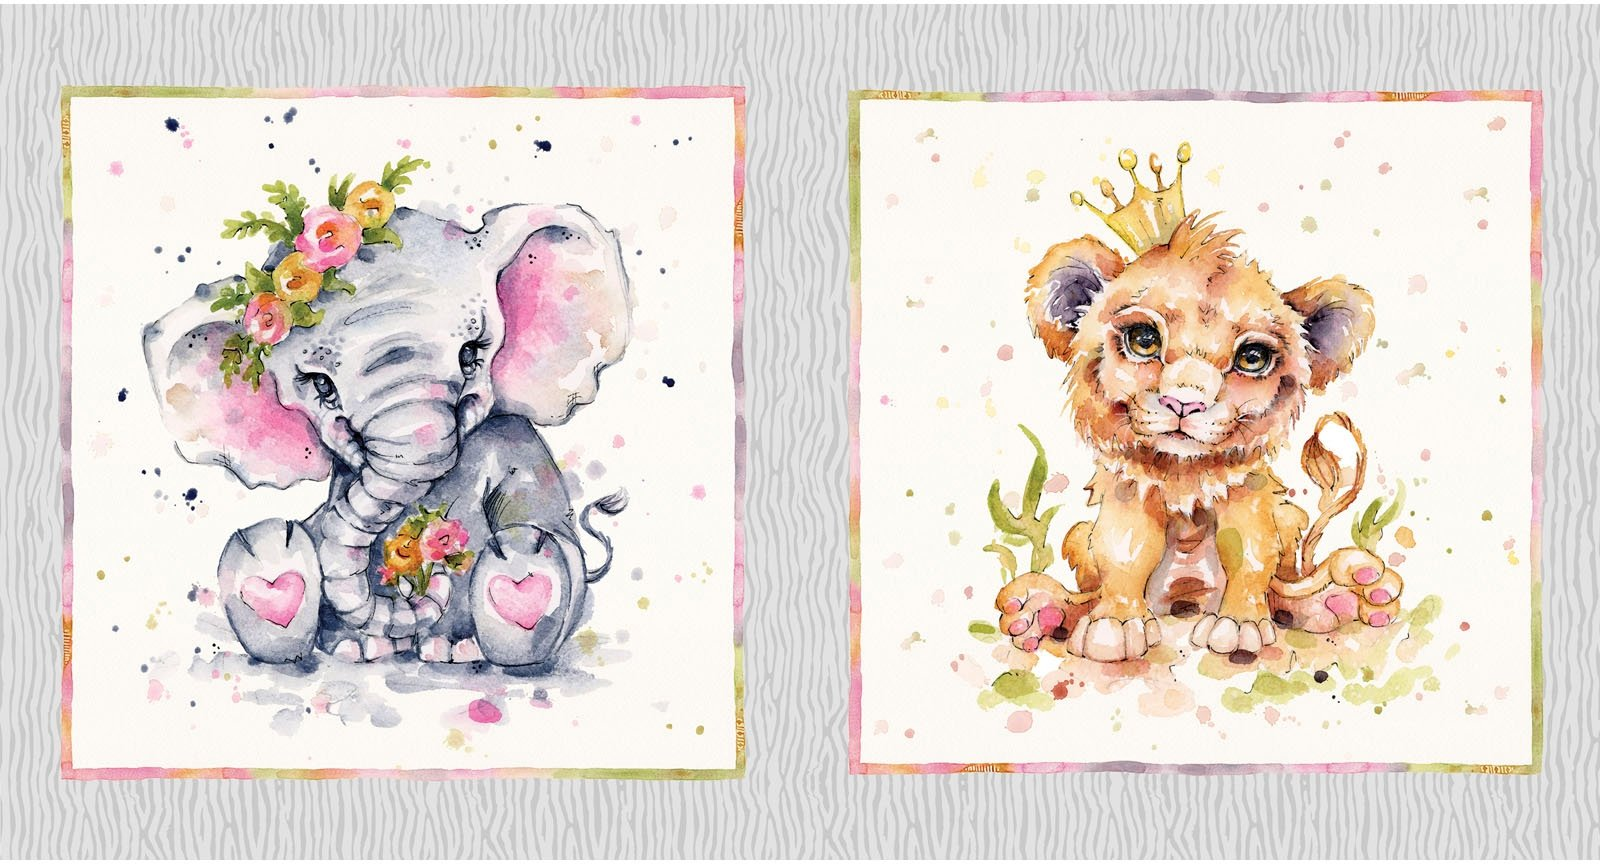 LDSA-4546 PA - LITTLE DARLINGS SAFARI BY SILLIER THAN SALLY ELEPHANT/LION 10YDS/15PNLS - ARRIVING IN FEBRUARY 2022